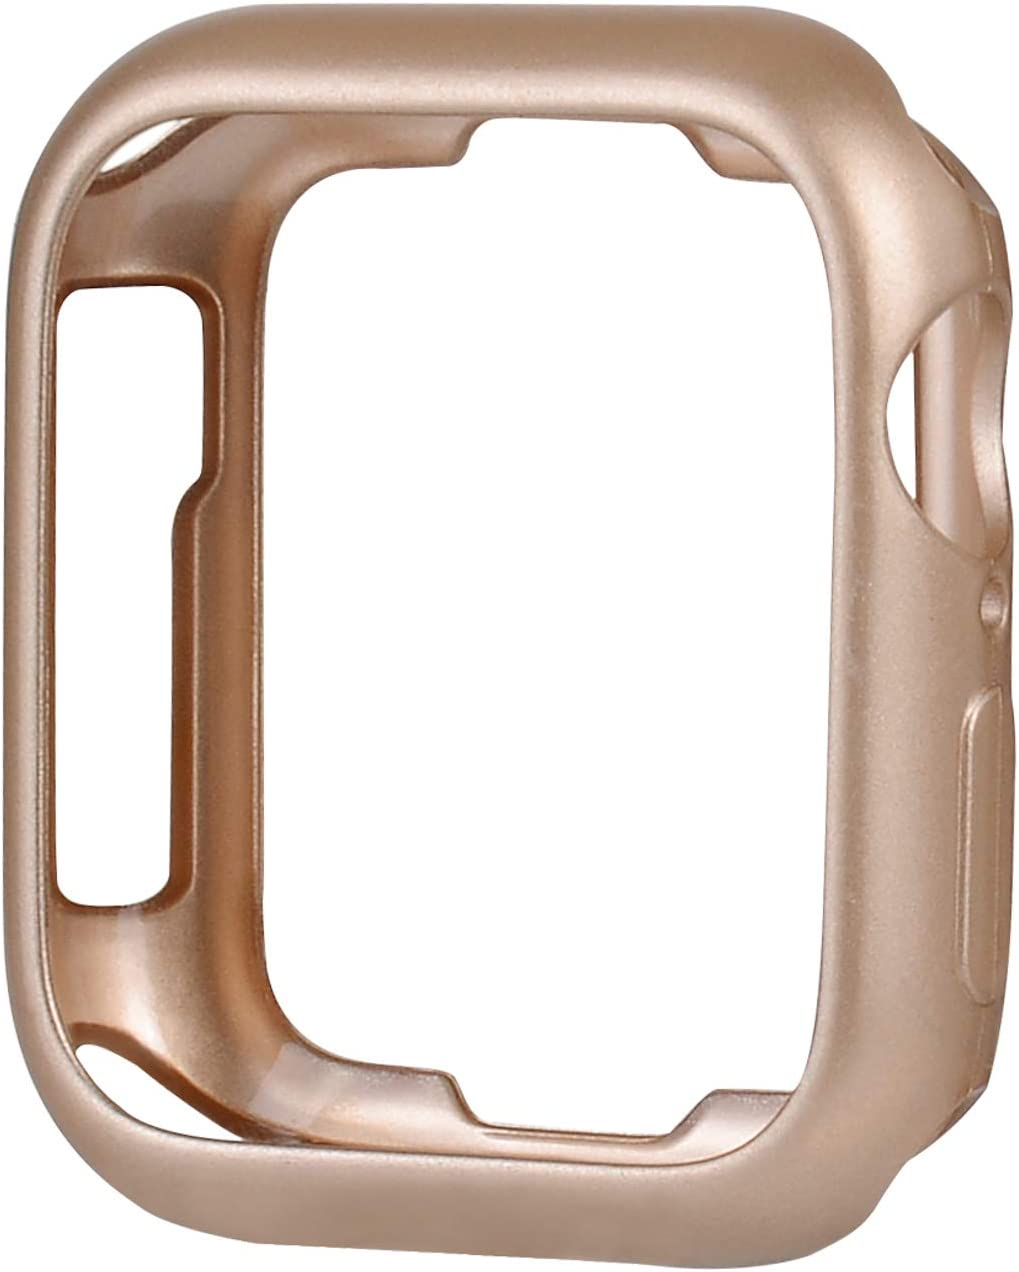 JSGJMY Soft TPU Case Compatible with Apple Watch 38mm 40mm 42mm 44mm Series 6,Series 5,Series 4,Series 3,Series 2,Series 1(Champagne Gold, 38mm/40mm)